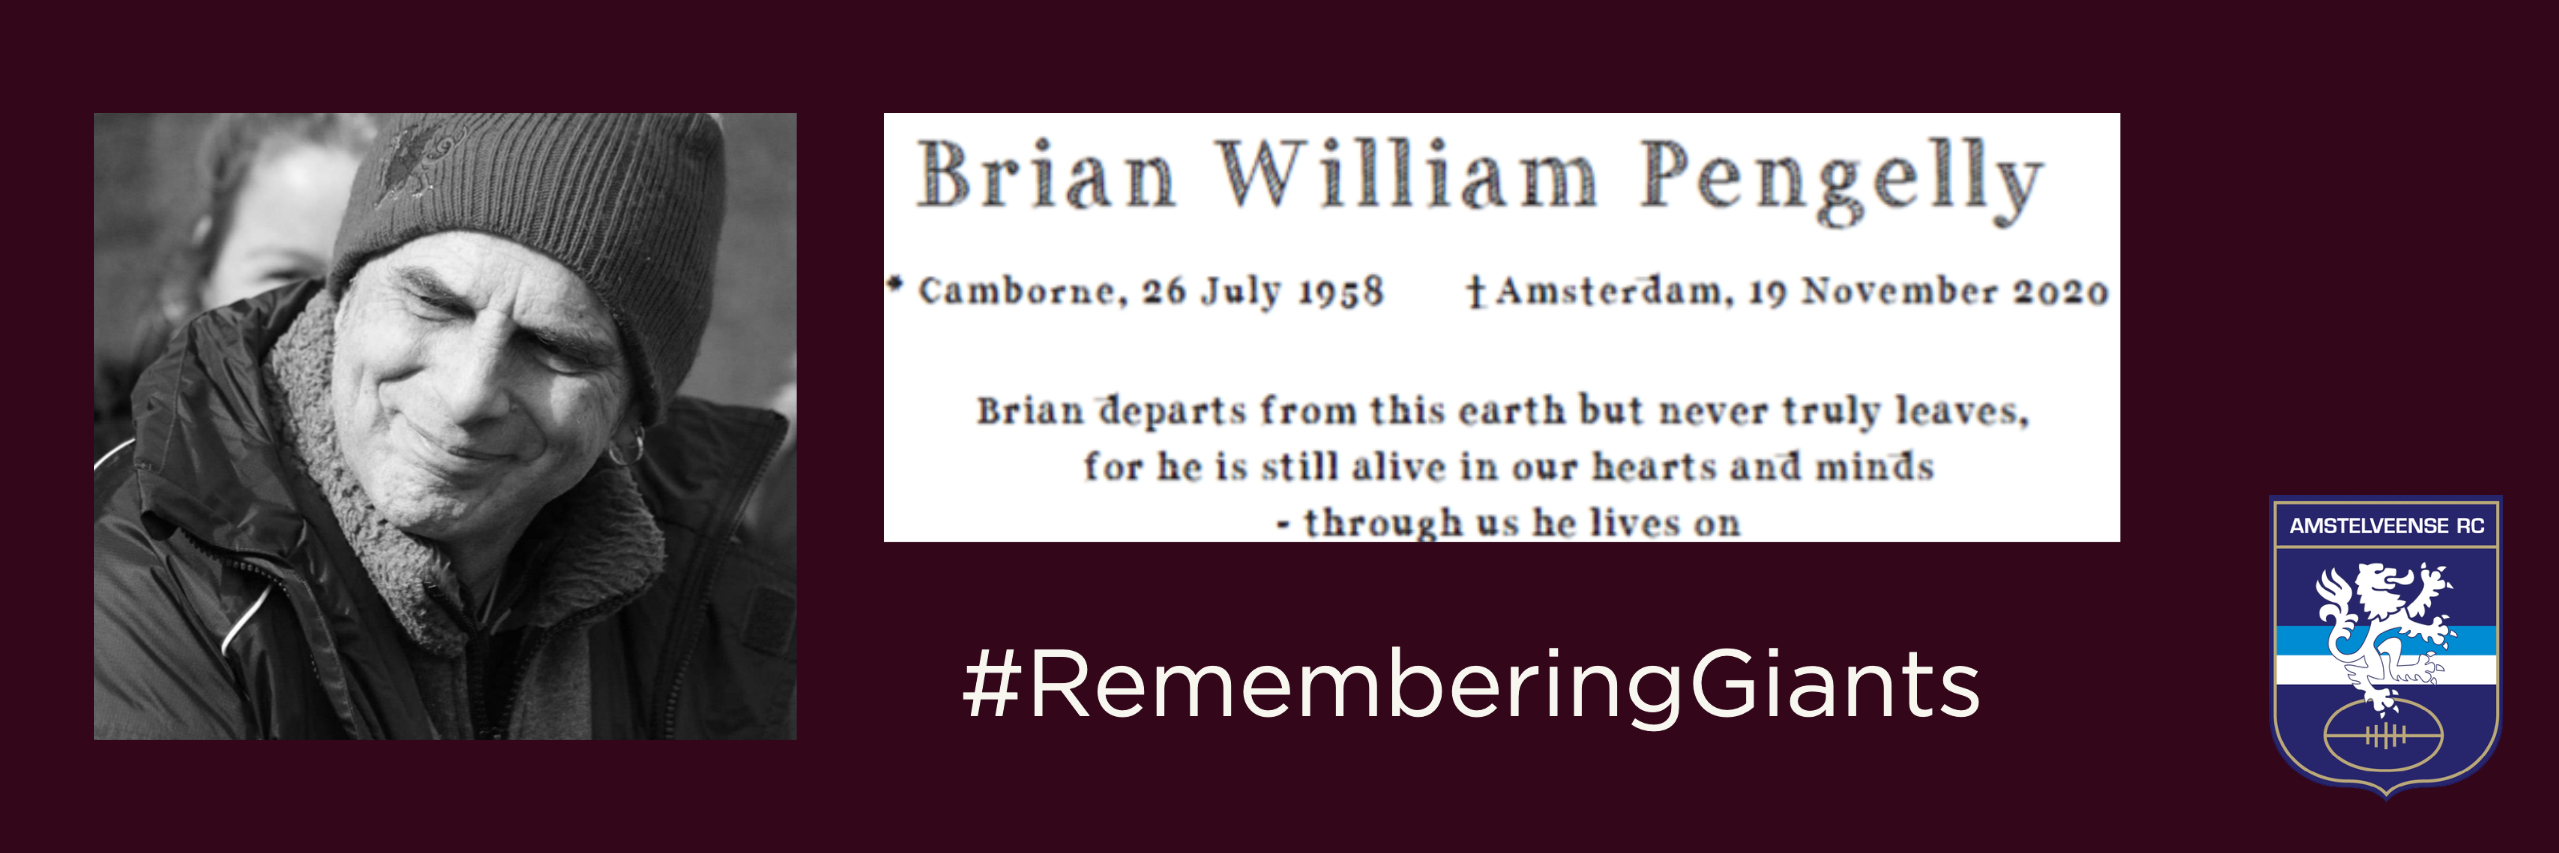 Brian Pengelly in memoriam